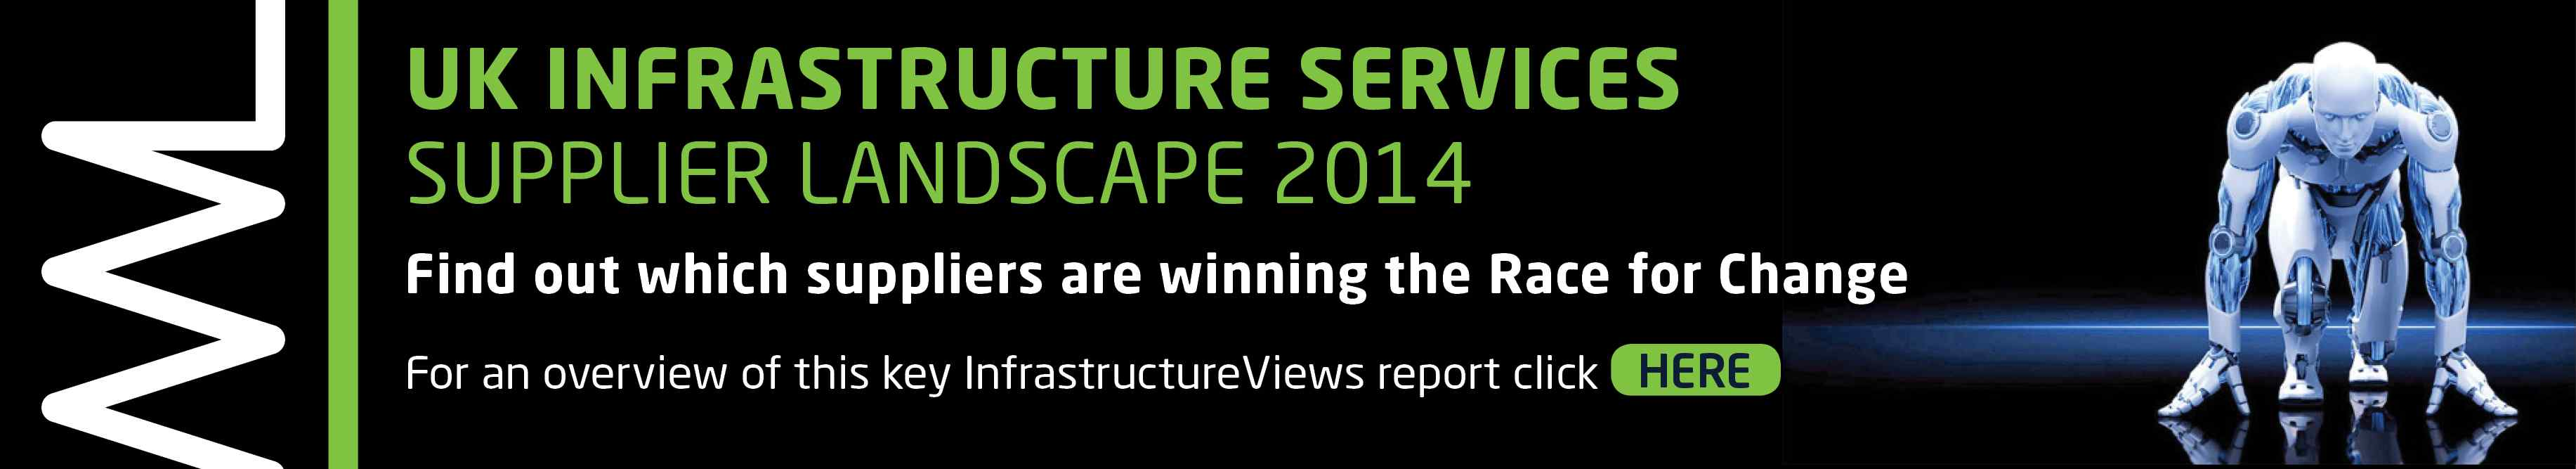 UK Infrastructure Services Supplier Landscape Report 2014